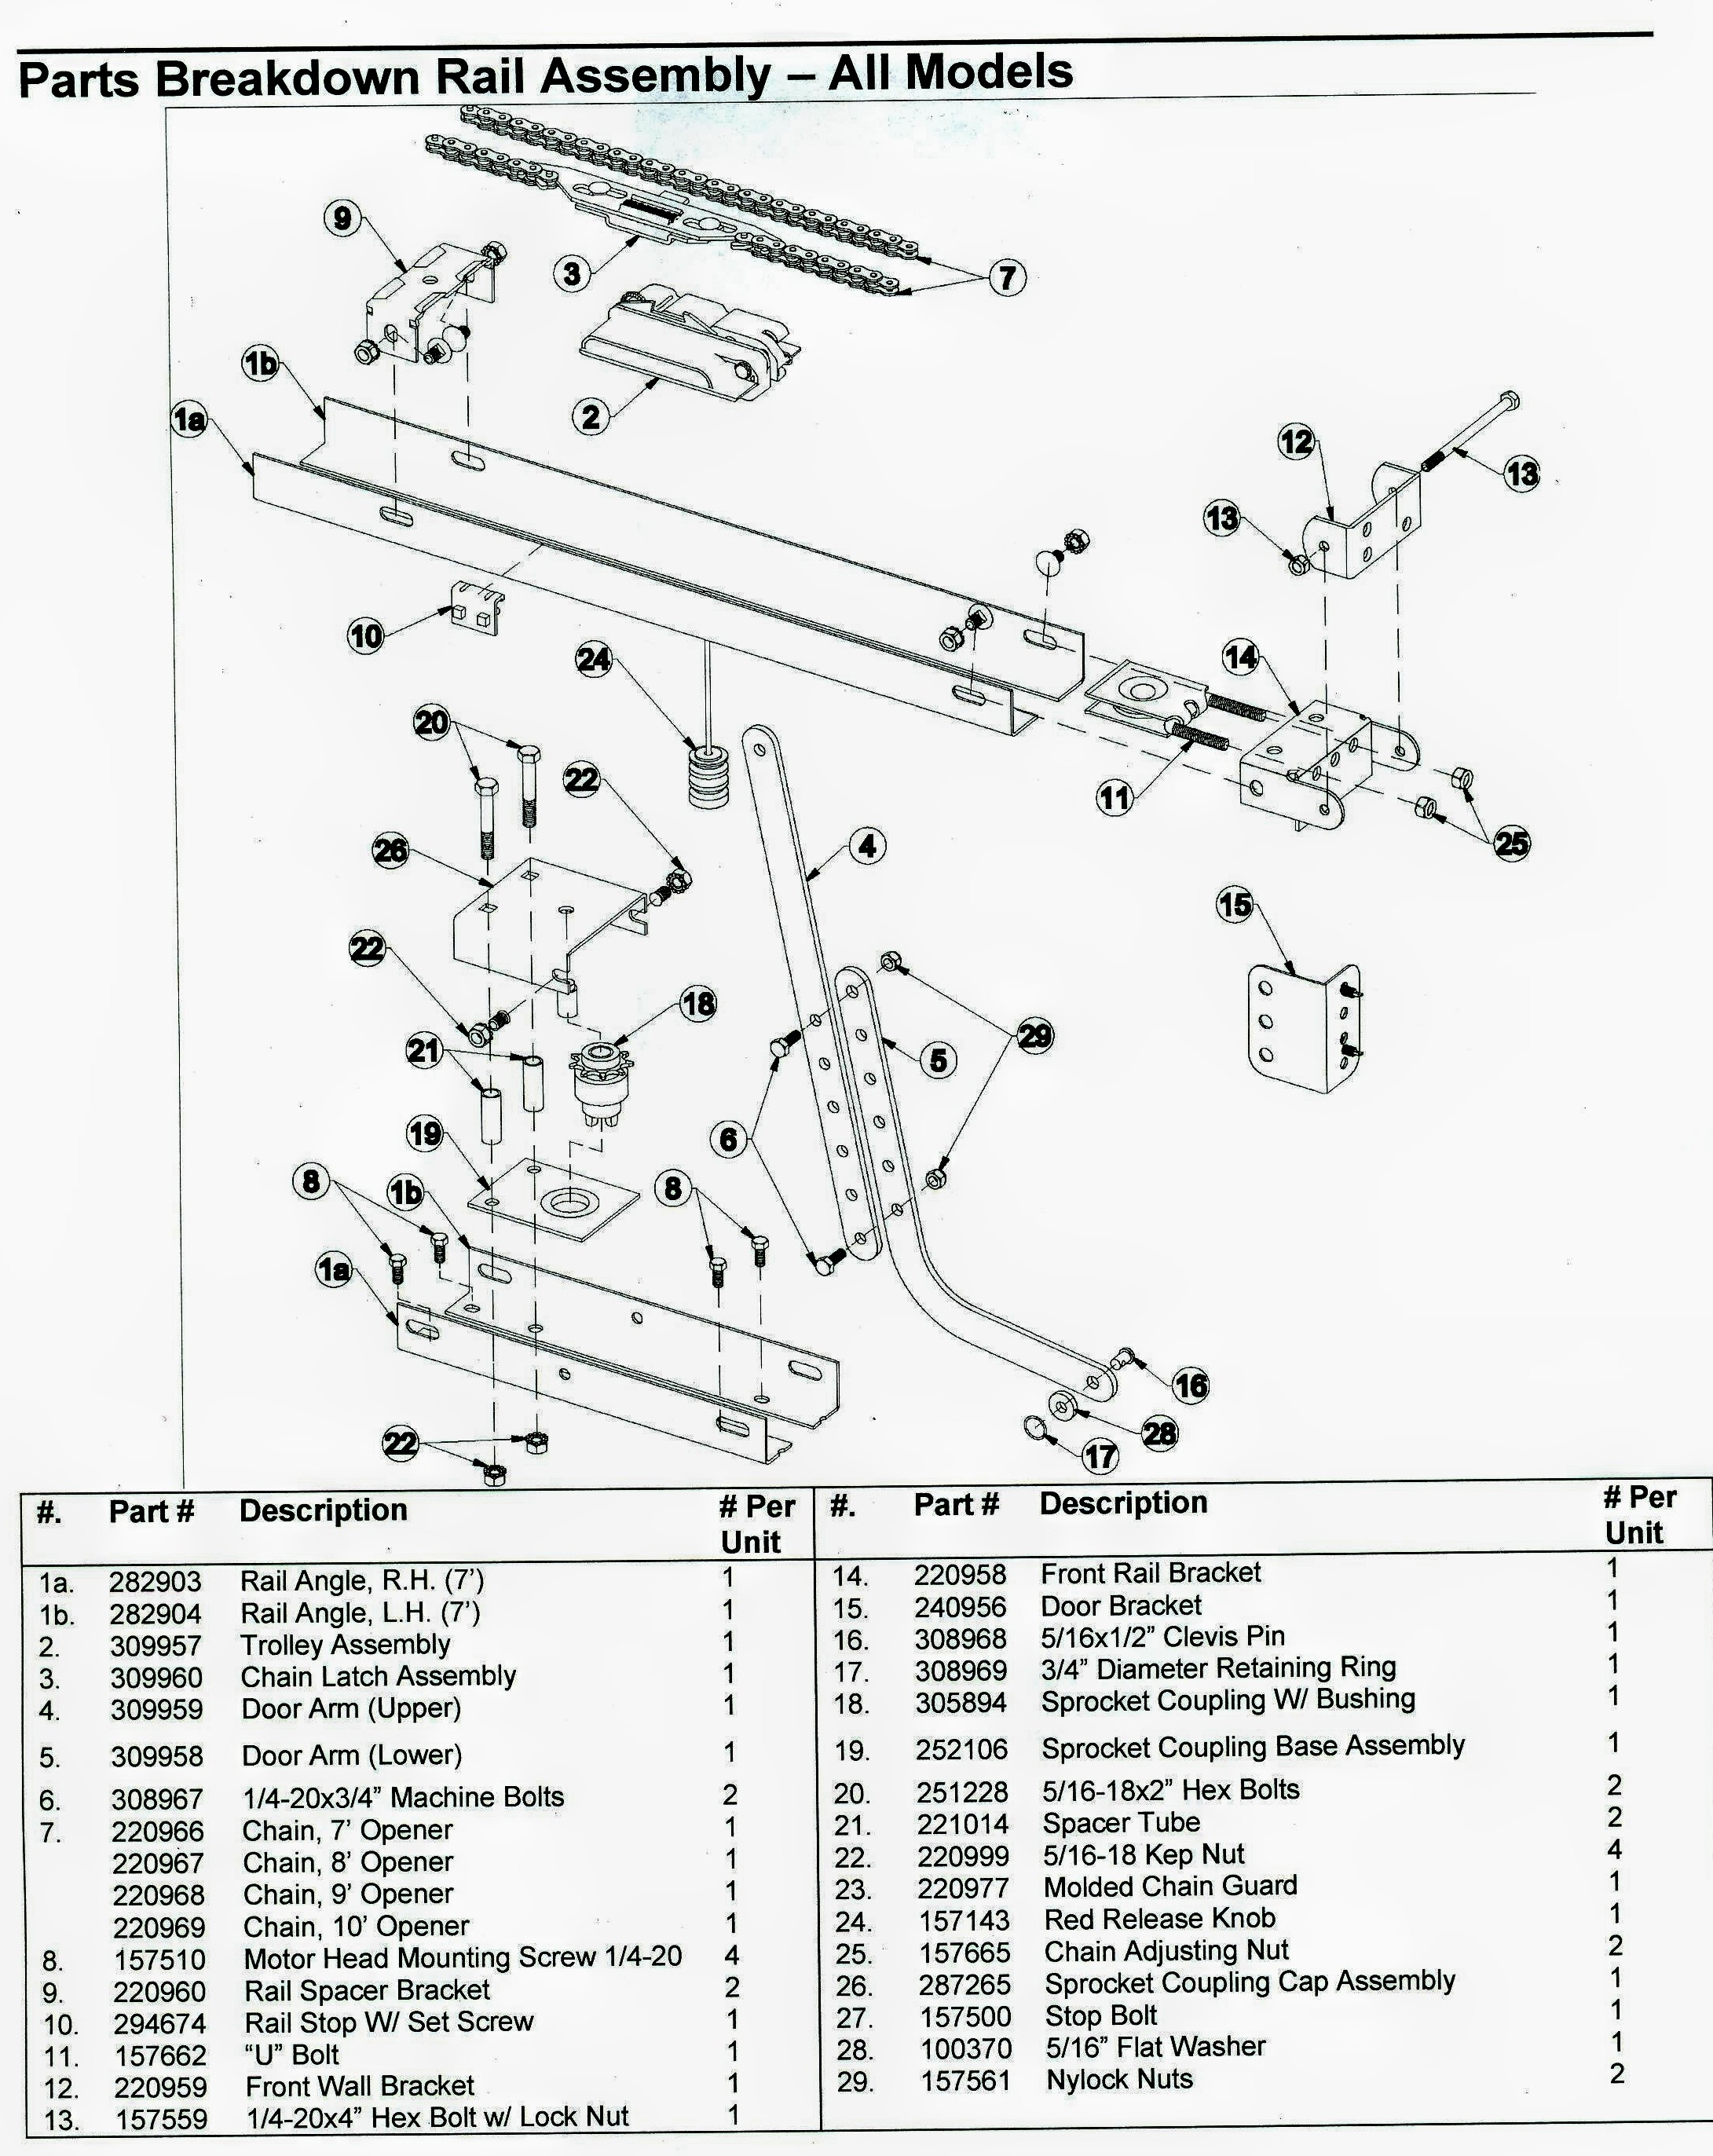 wiring diagram for liftmaster garage door opener wiring diagram throughout liftmaster garage door opener parts diagram liftmaster garage door opener parts diagram automotive parts liftmaster wiring diagram at mifinder.co